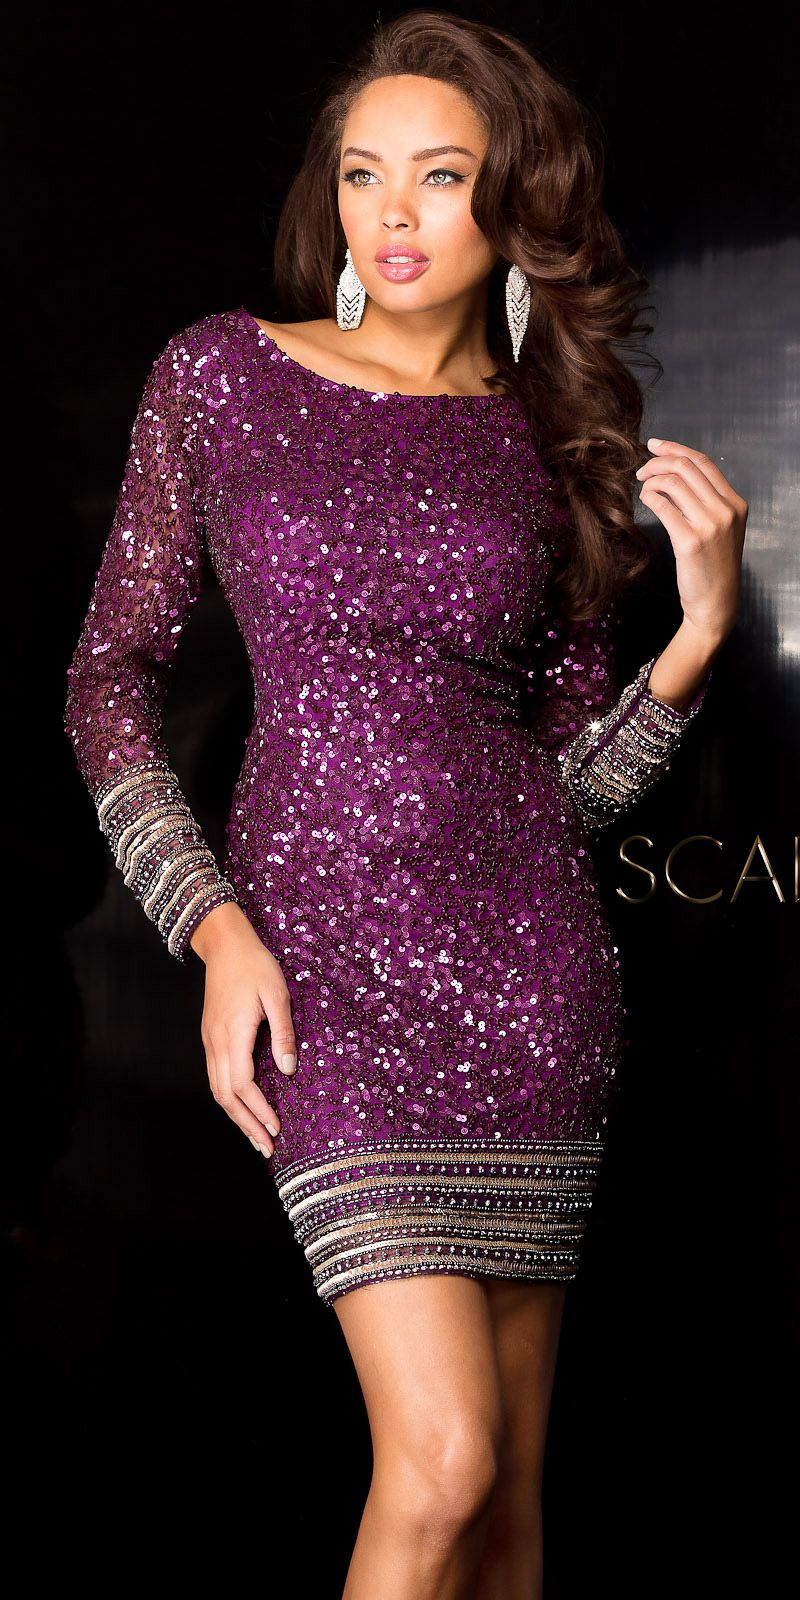 Scattered Sequin Cocktail Dress by Scala #edressme | night dress ...